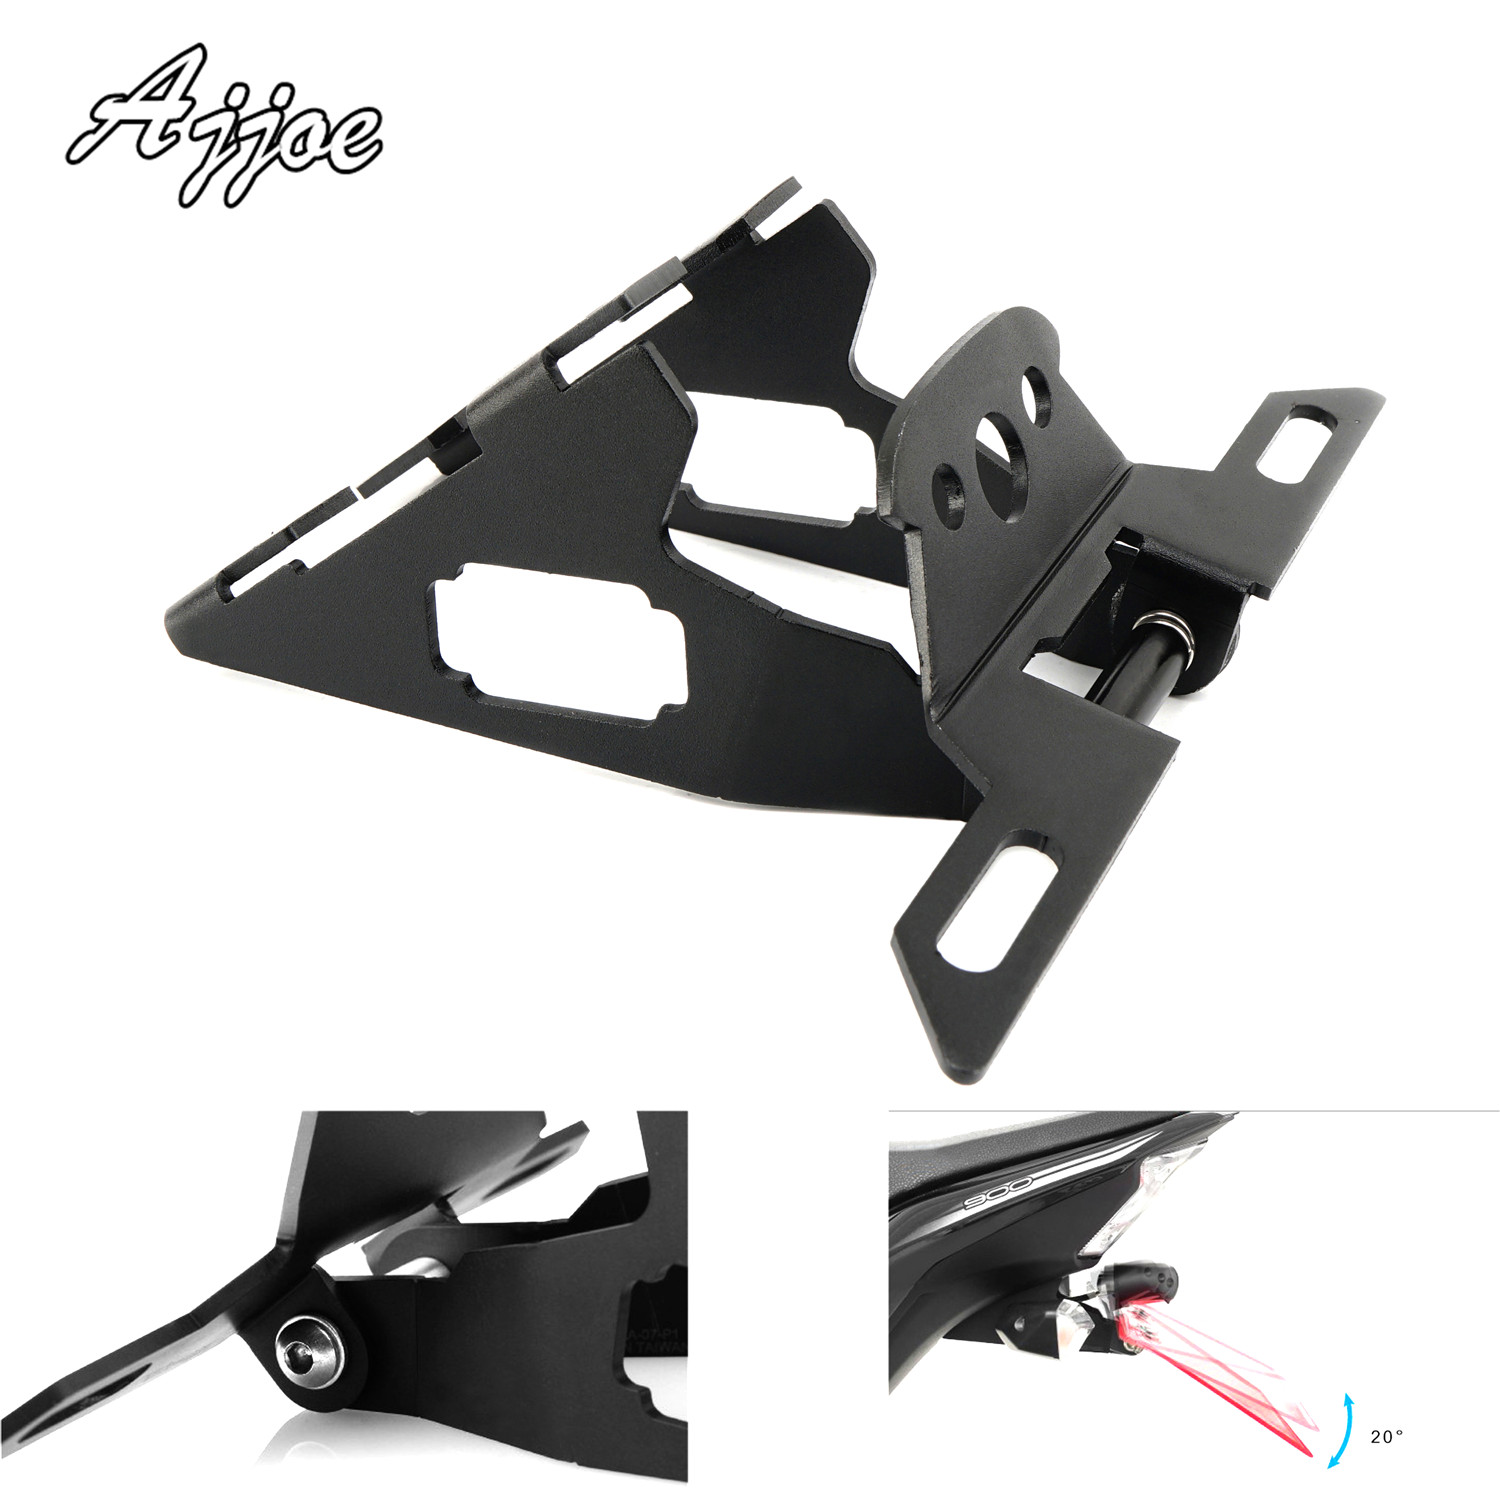 For Kawasaki Z900 2017 2018 Motorcycle Foldable License Plate Holder License Bracket Tail Tidy Fender Eliminator Z 900For Kawasaki Z900 2017 2018 Motorcycle Foldable License Plate Holder License Bracket Tail Tidy Fender Eliminator Z 900